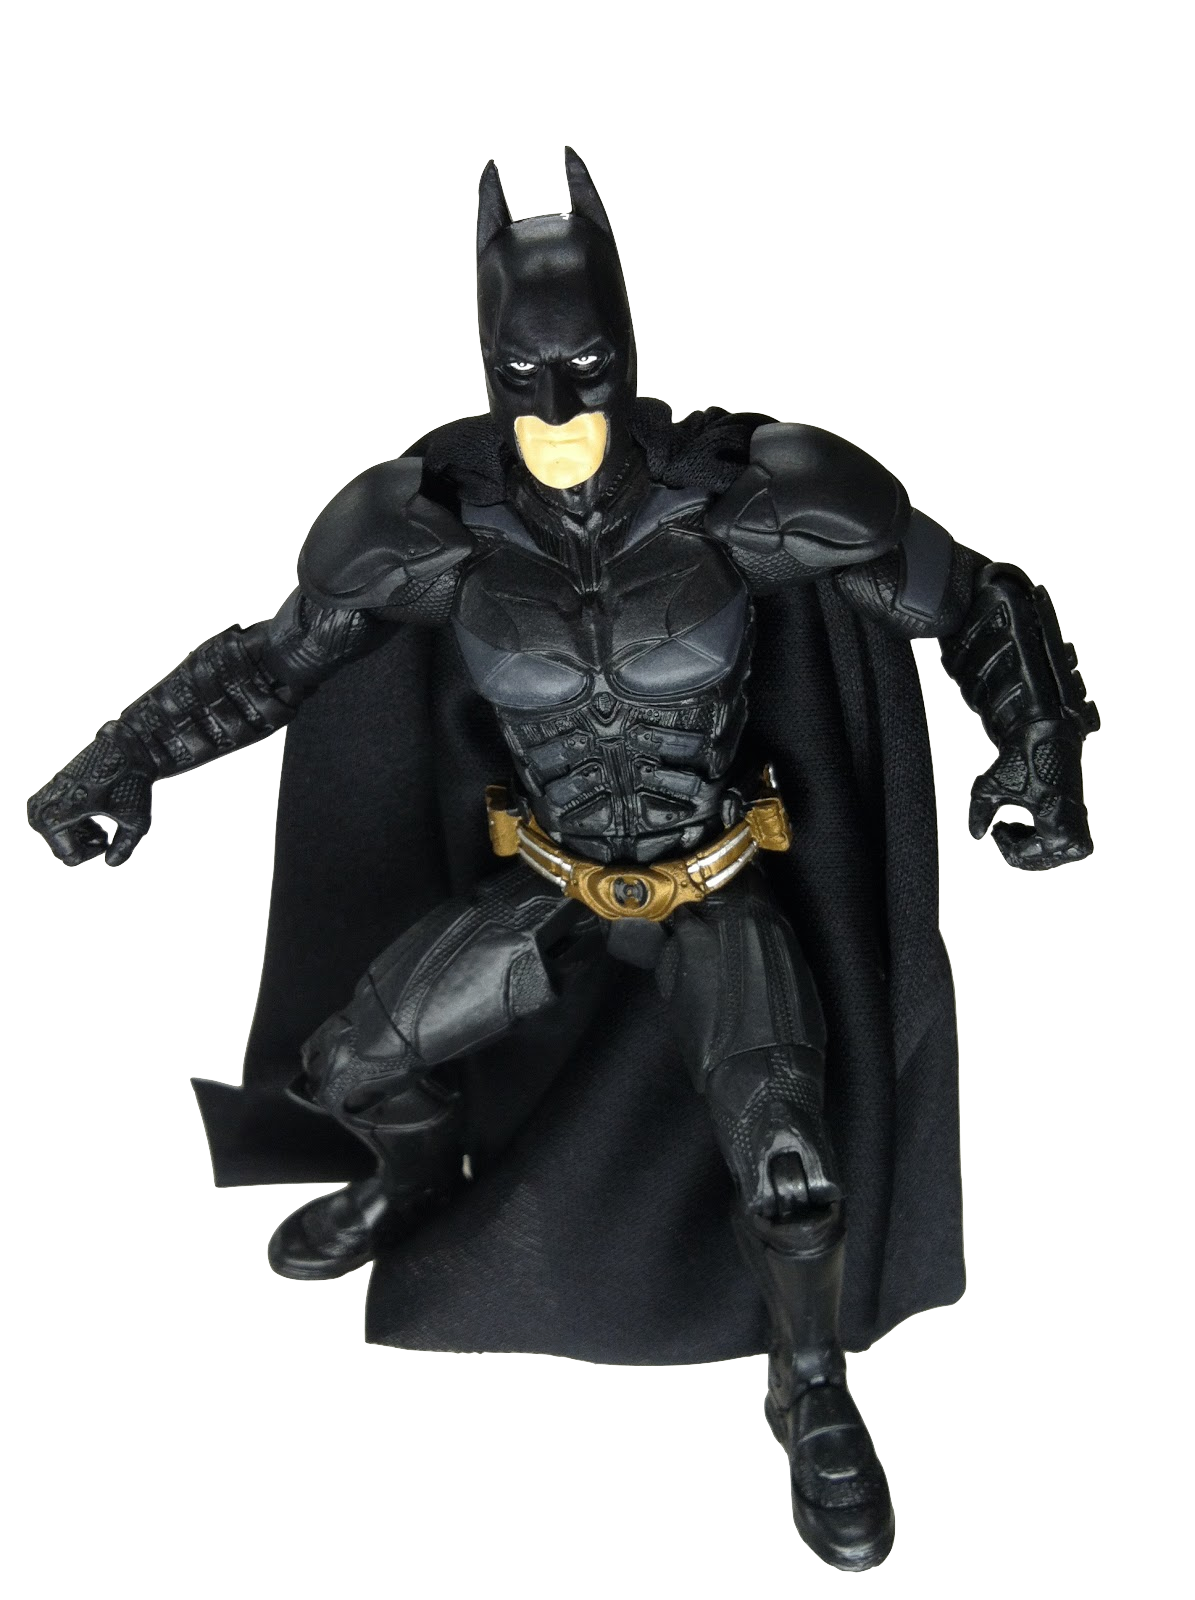 Dark Knight Rises GeekSummit Dark Knight Movie Masters Cape Tutorial